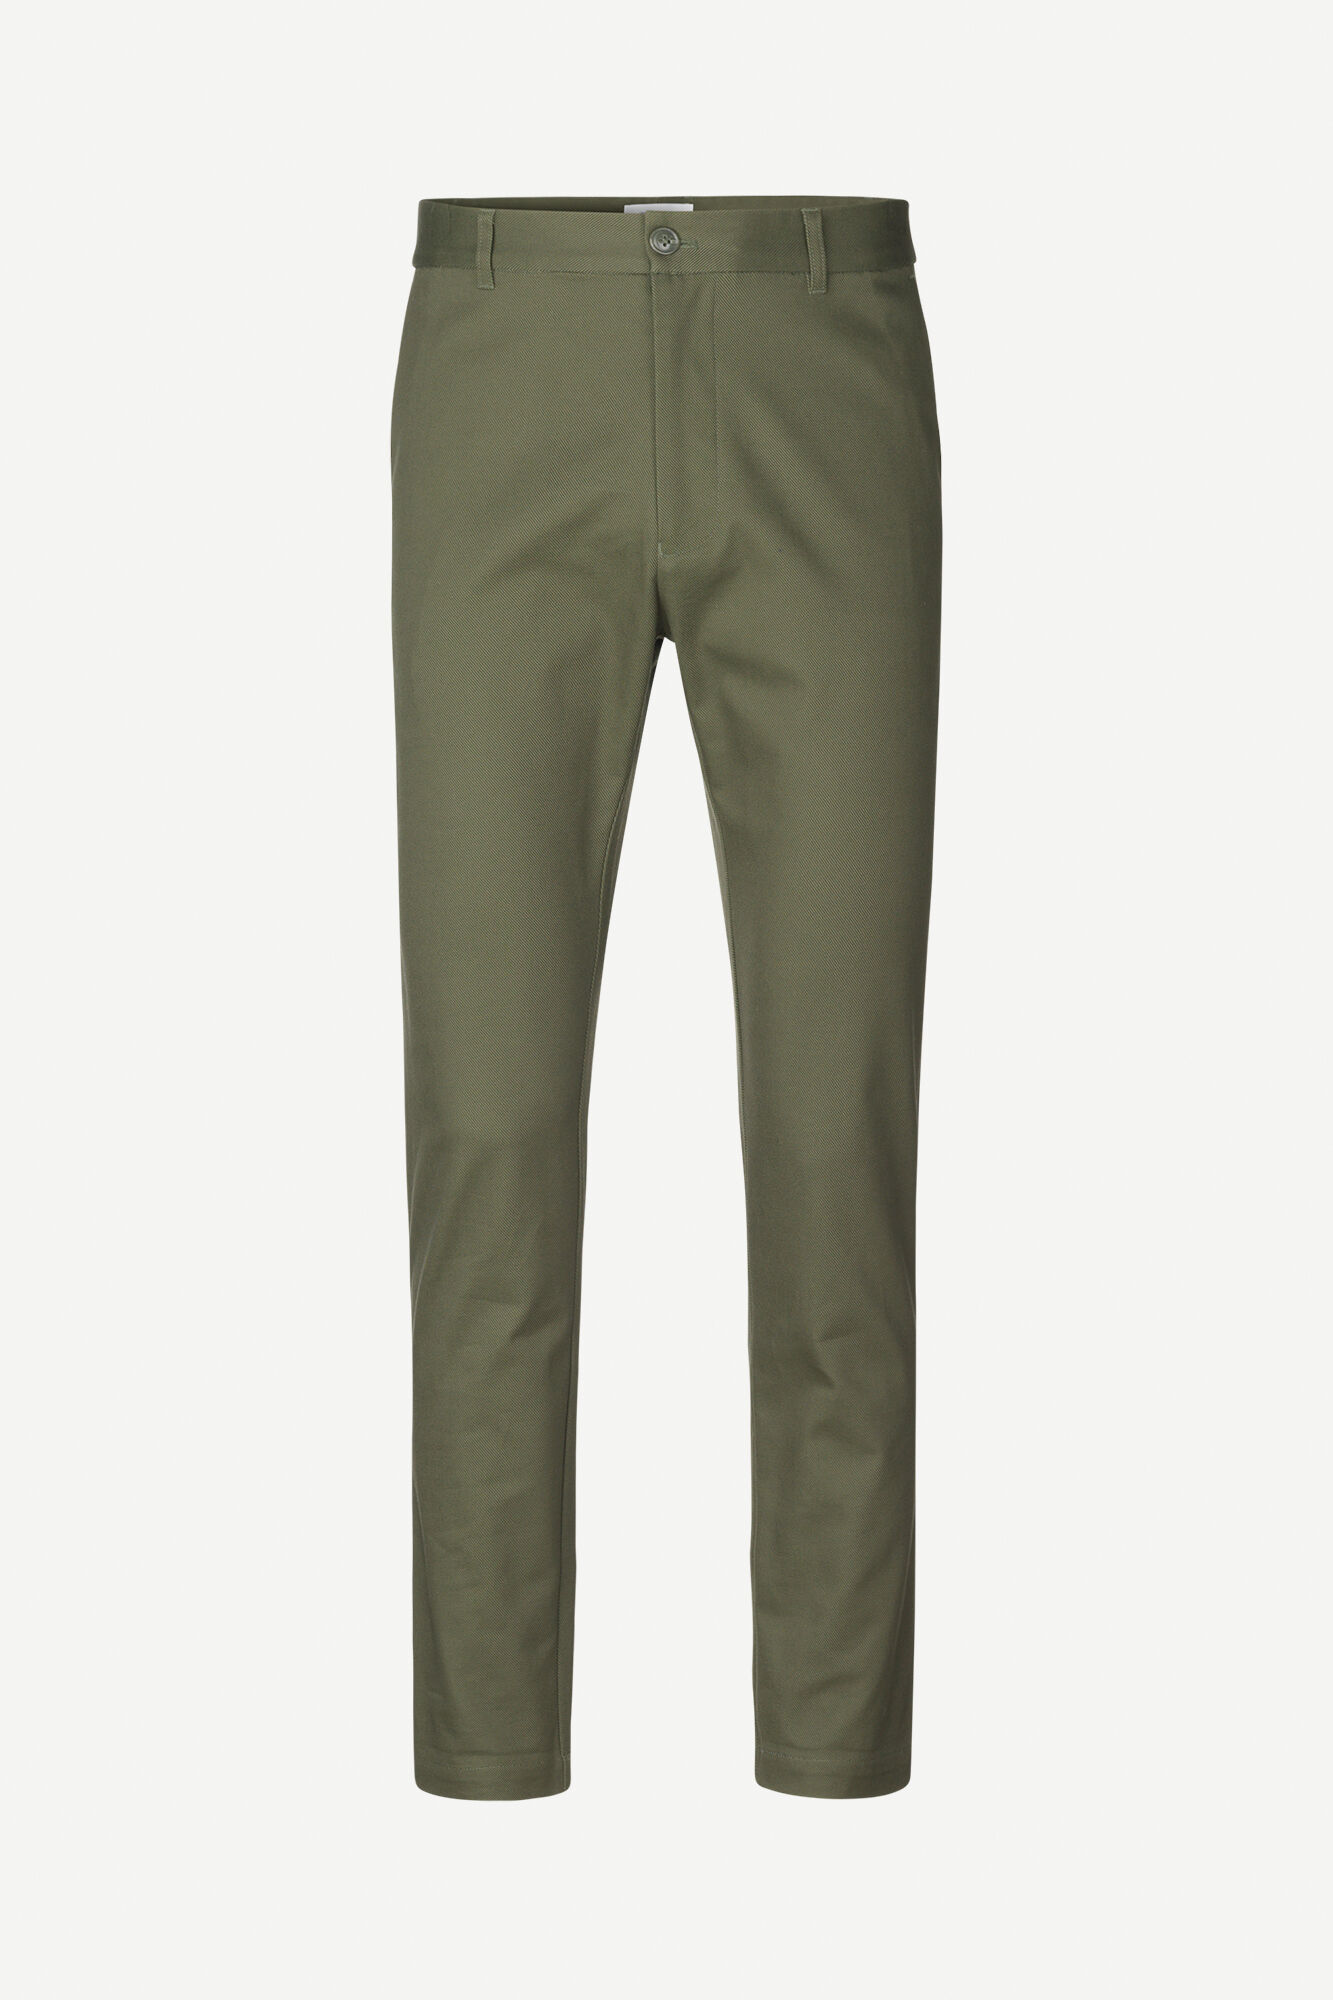 Andy x trousers 11044